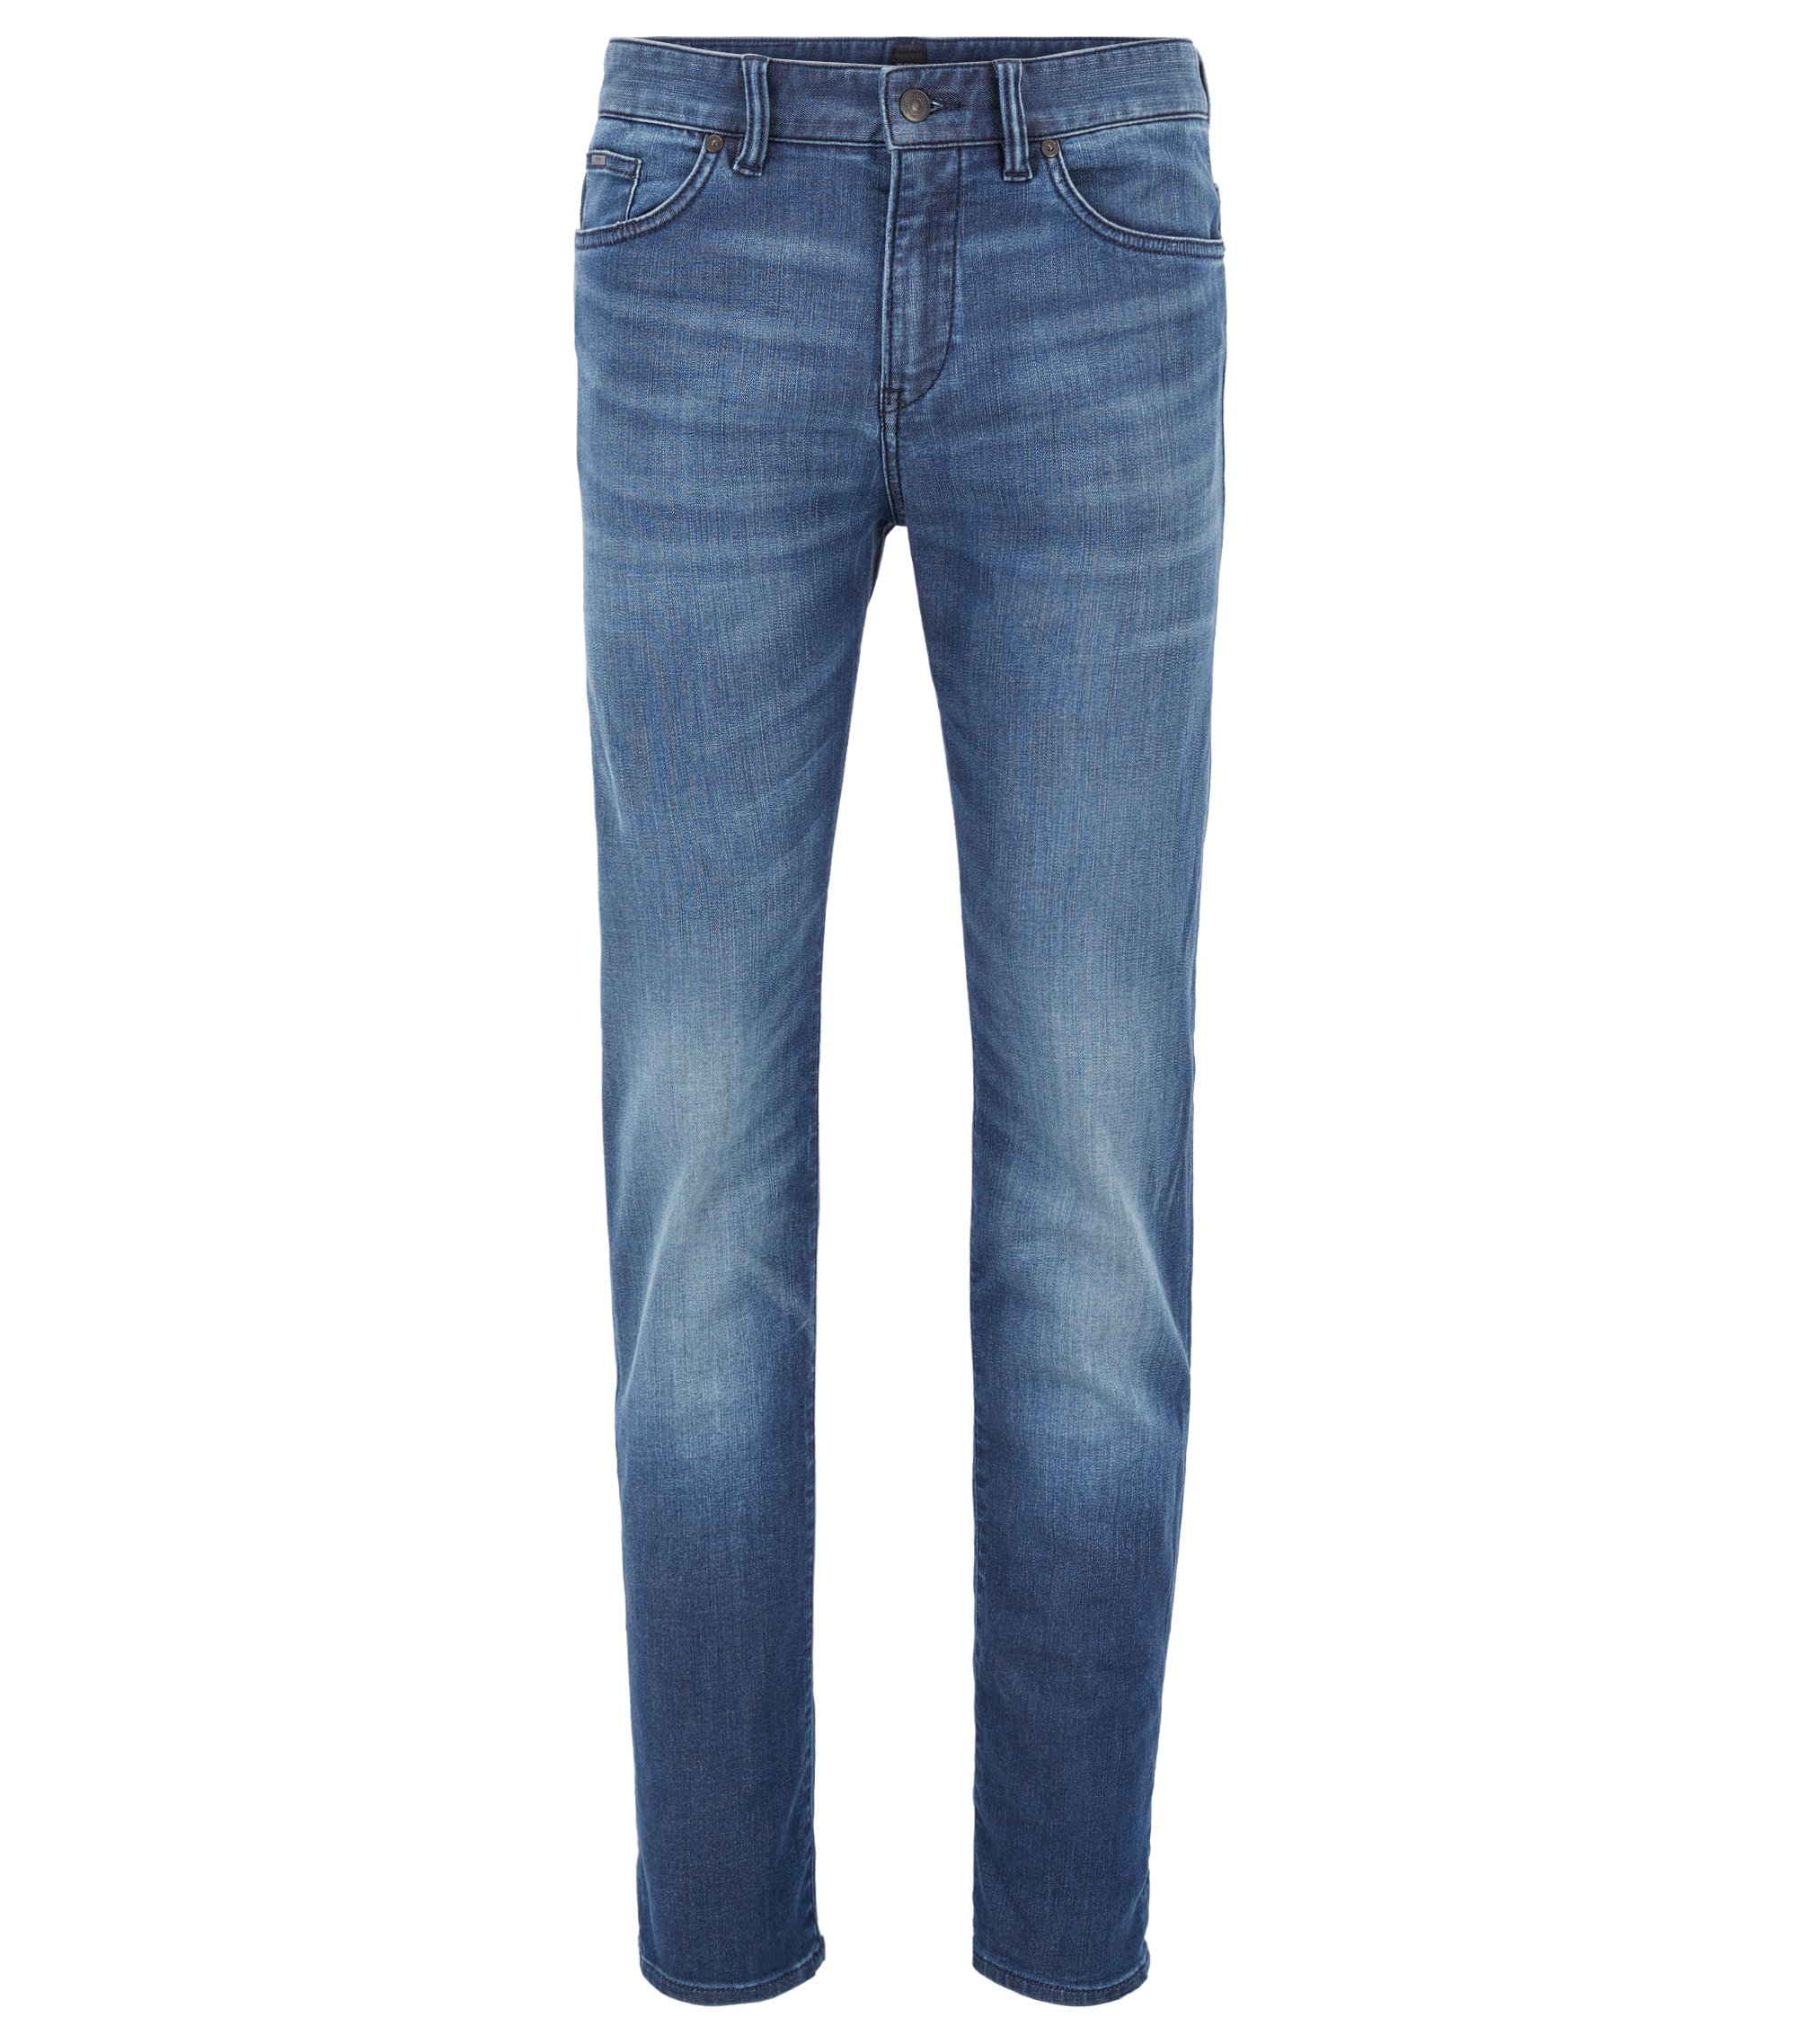 Cotton Blend Jean, Slim Fit | Delaware, Blue